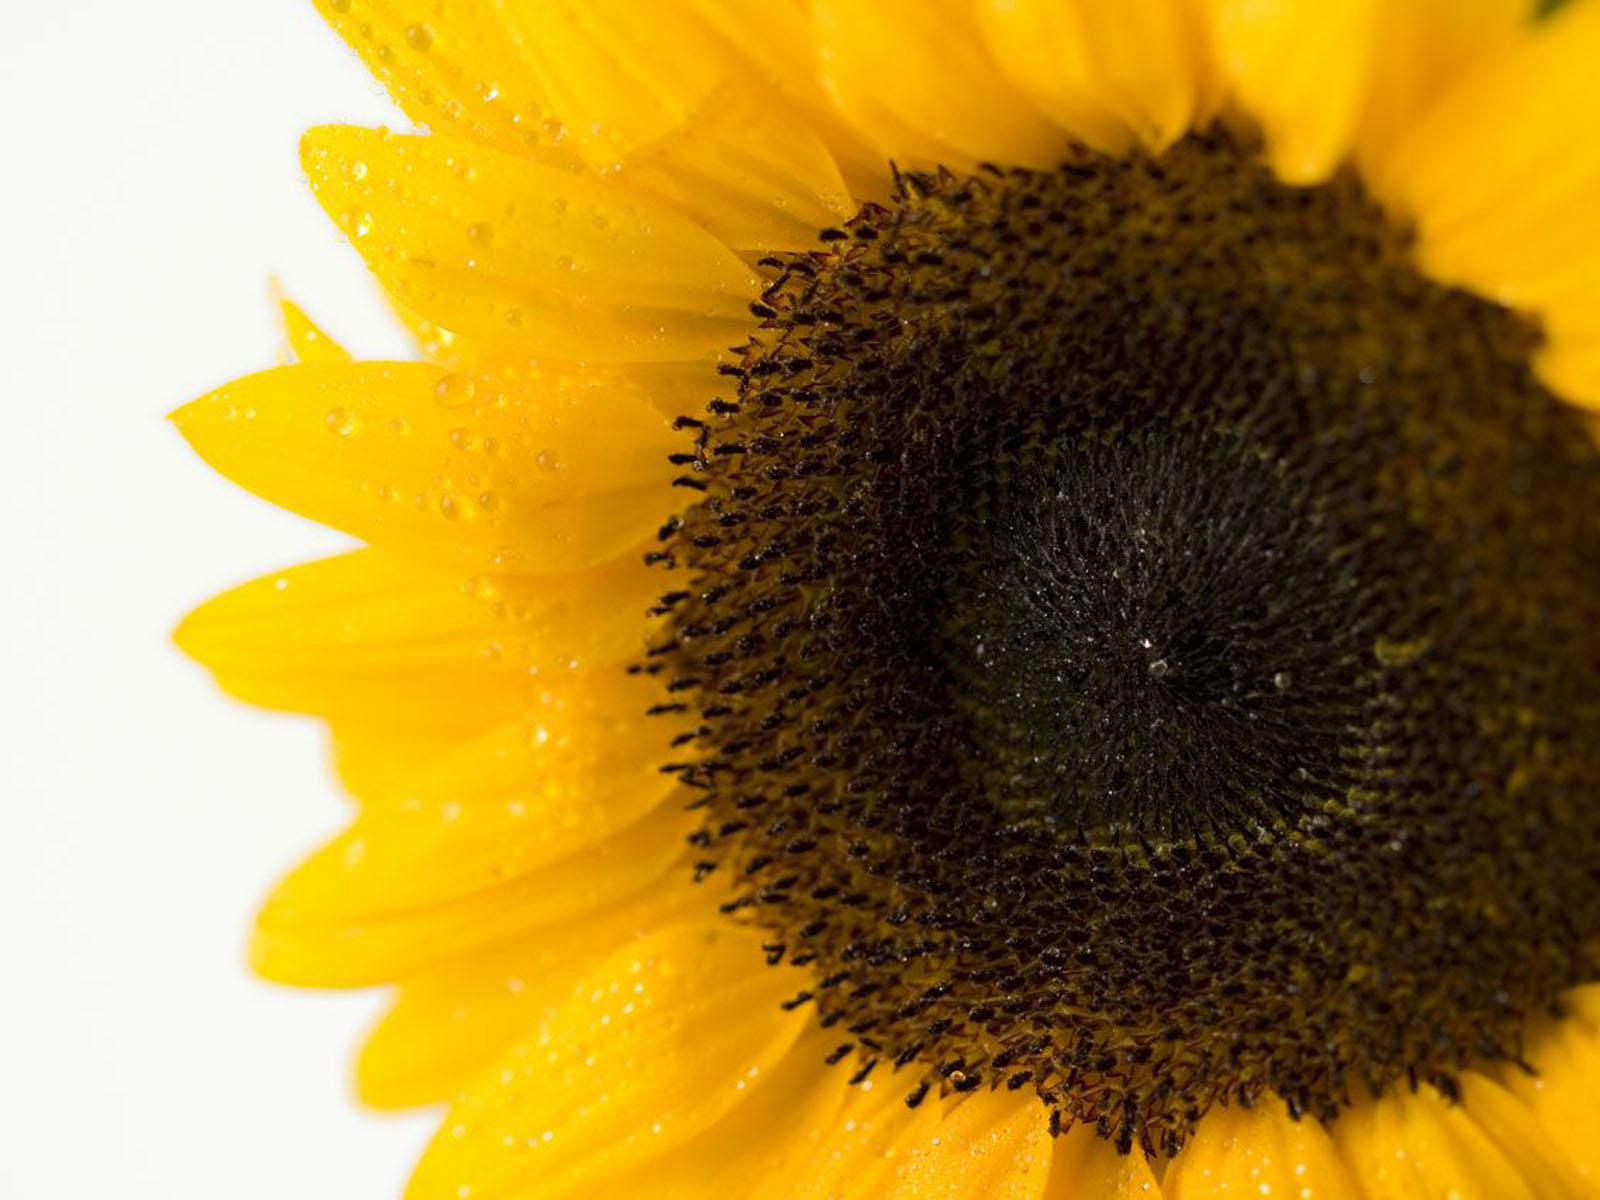 wallpapers Sunflower Close Up Wallpapers